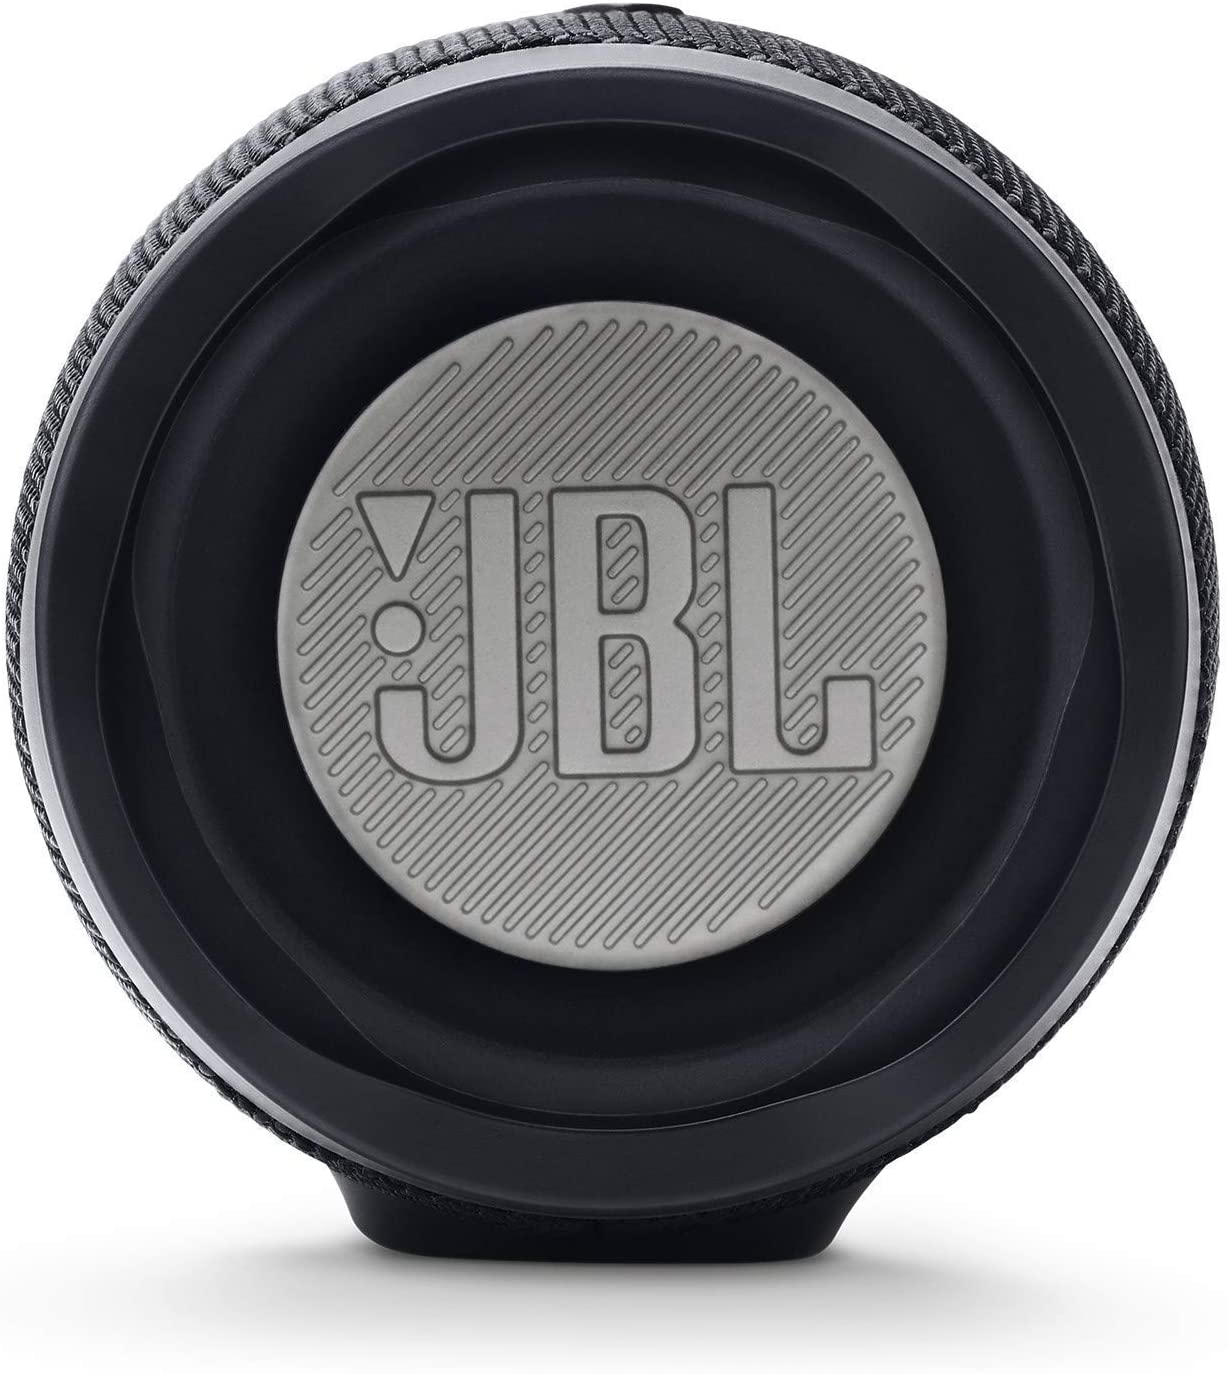 JBL Charge 4: Everything There Is To Know